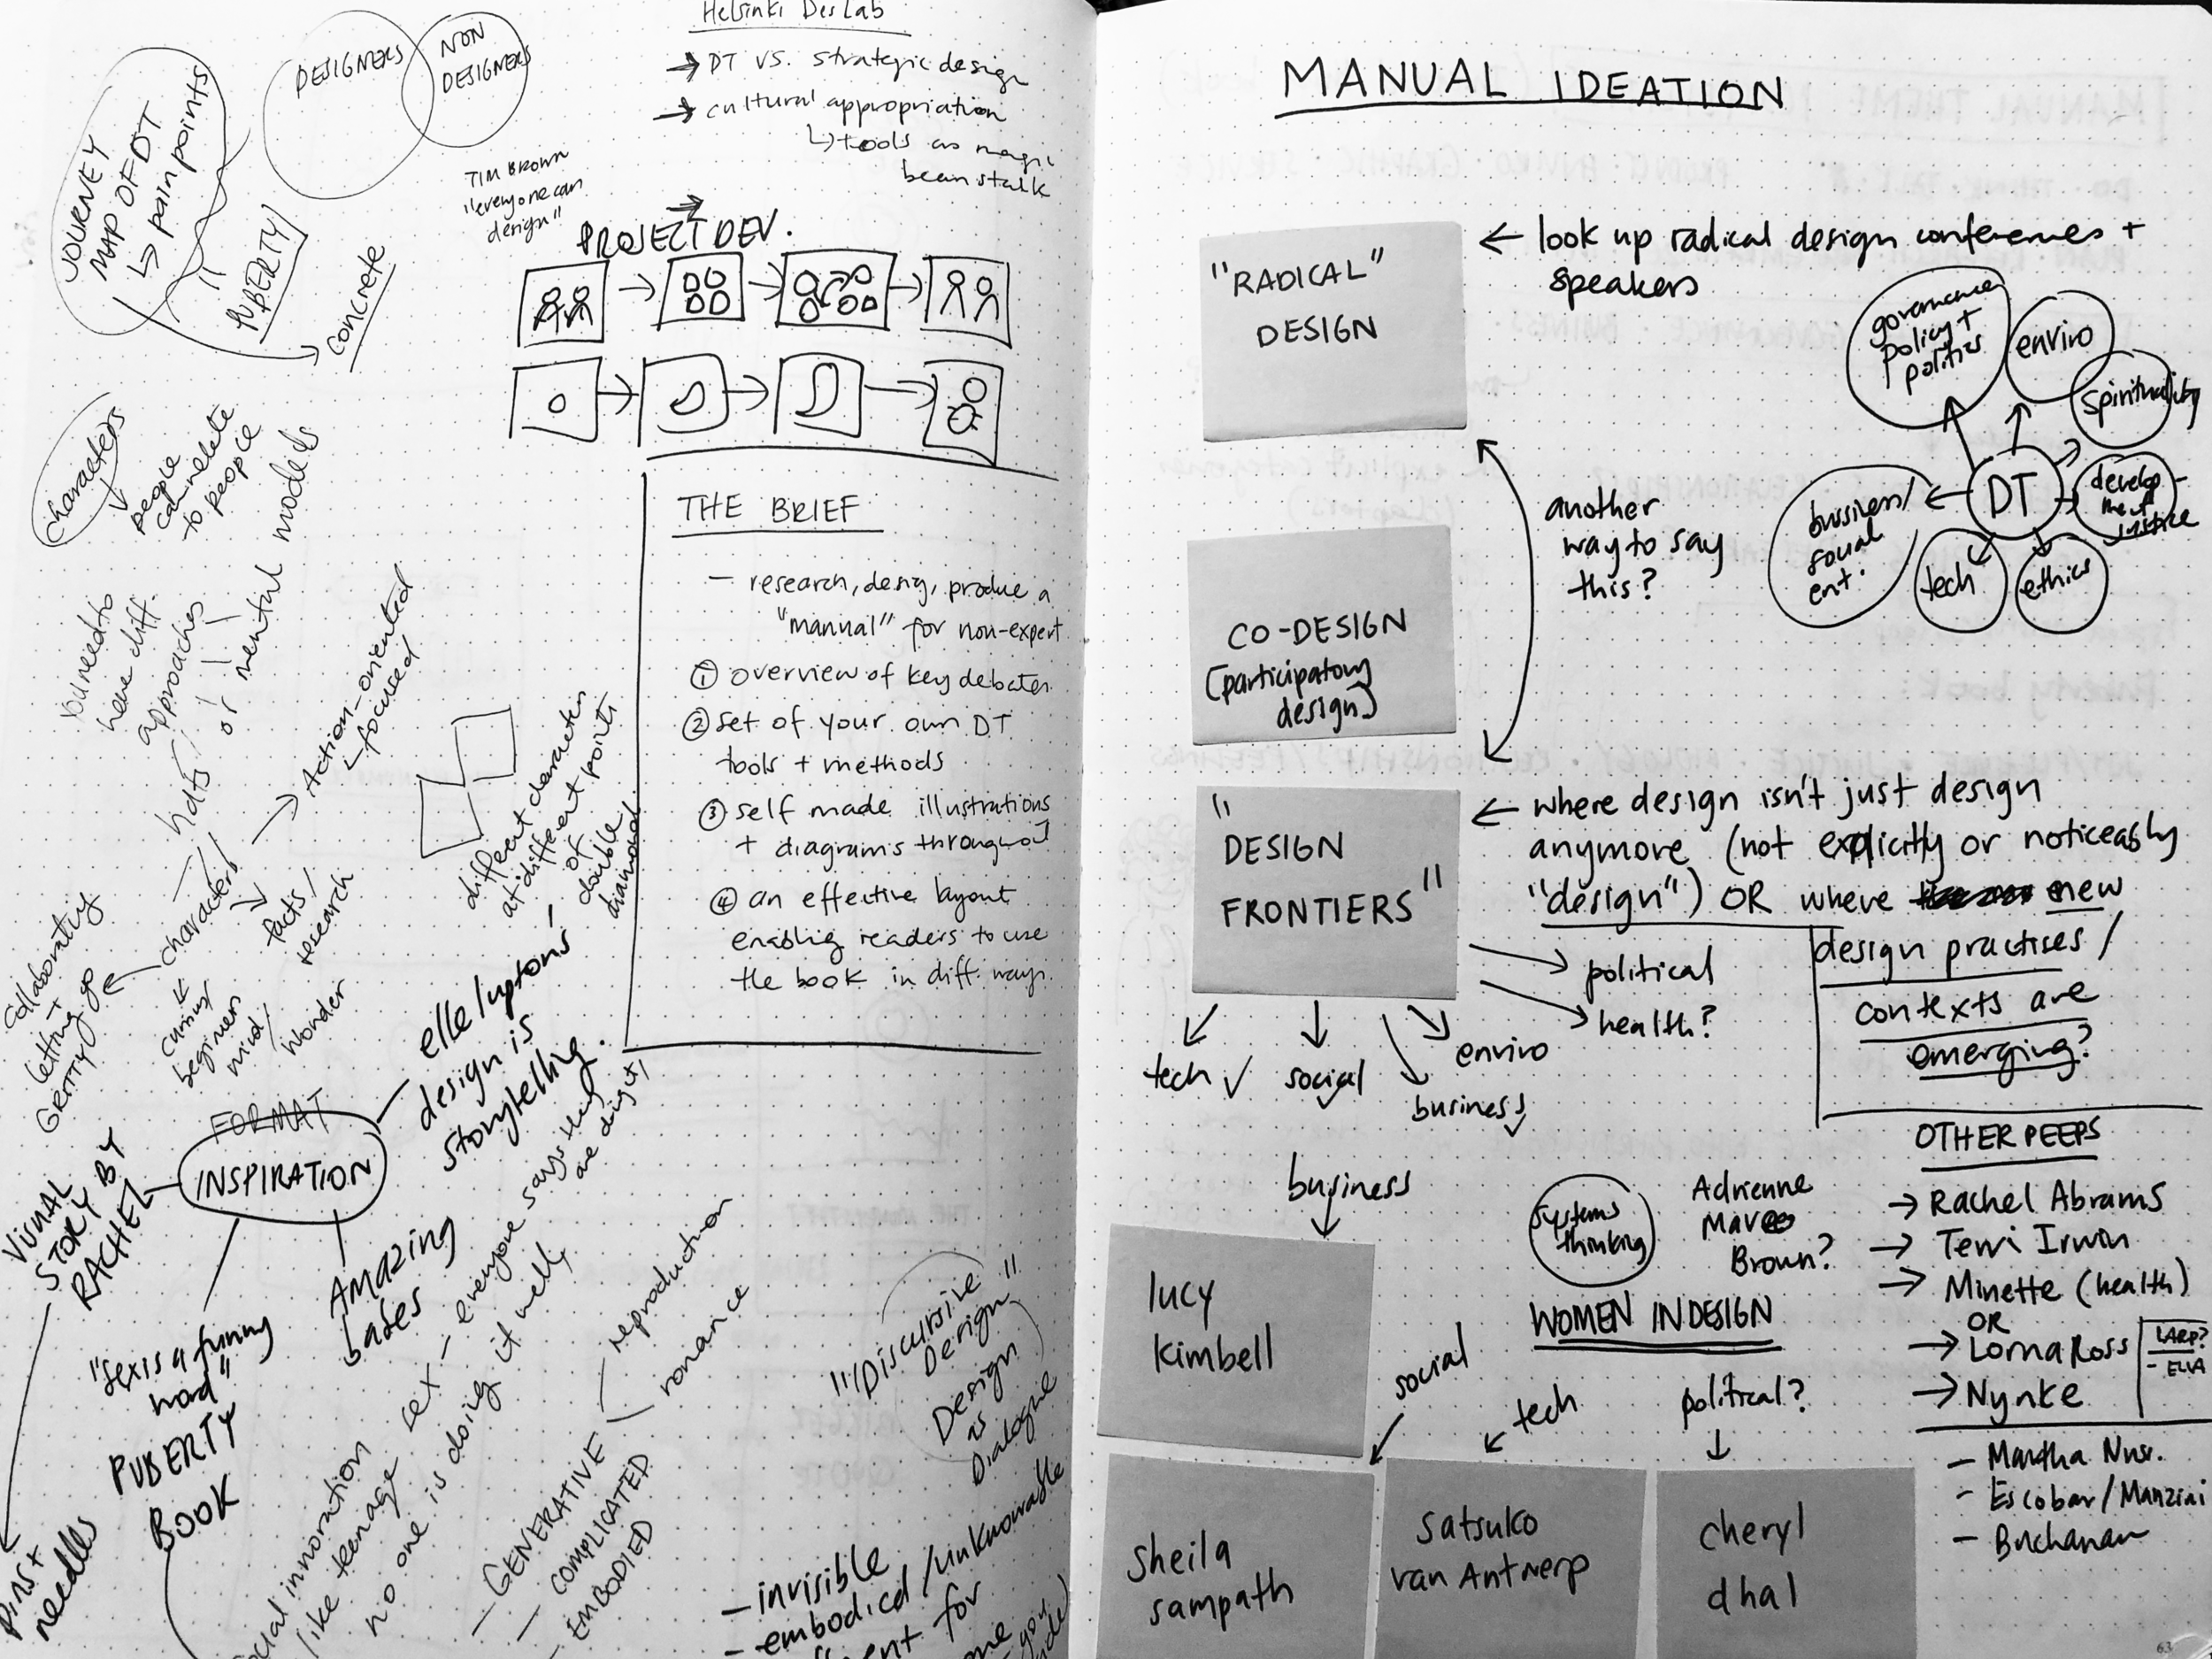 Mapping areas of interest and overlap with design thinking